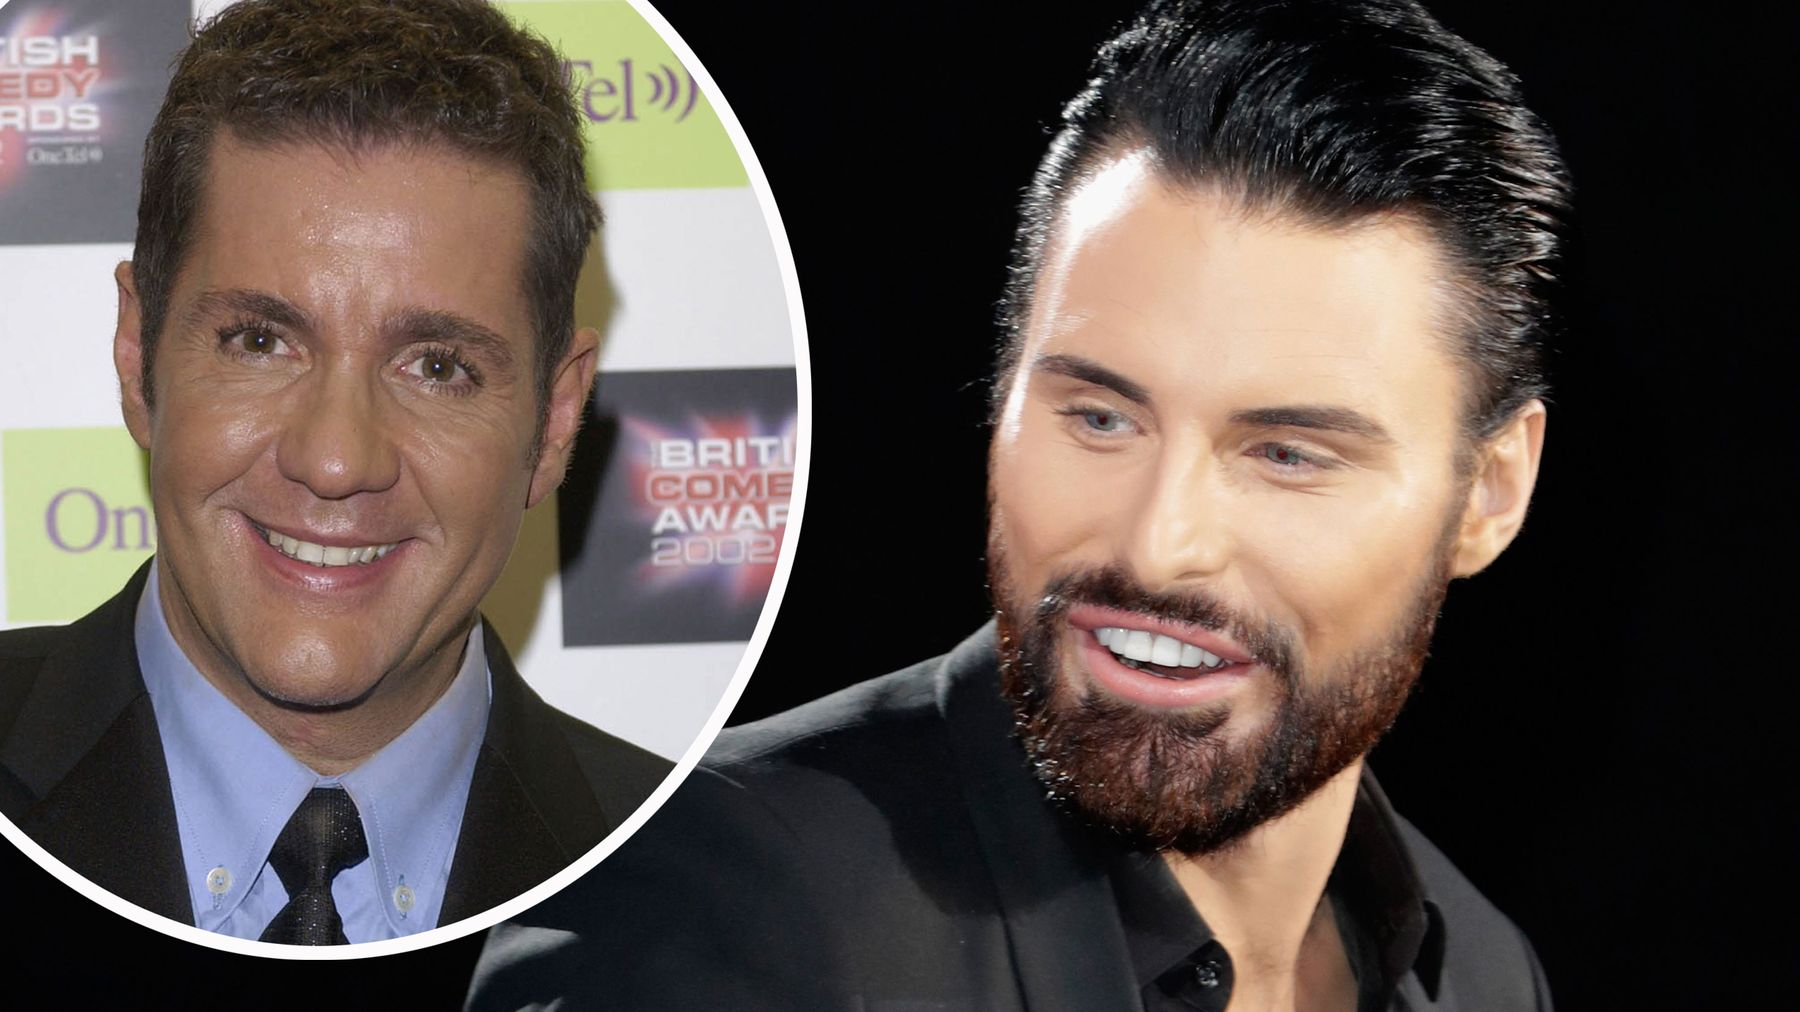 Rylan Clark-Neal will replace late Dale Winton in